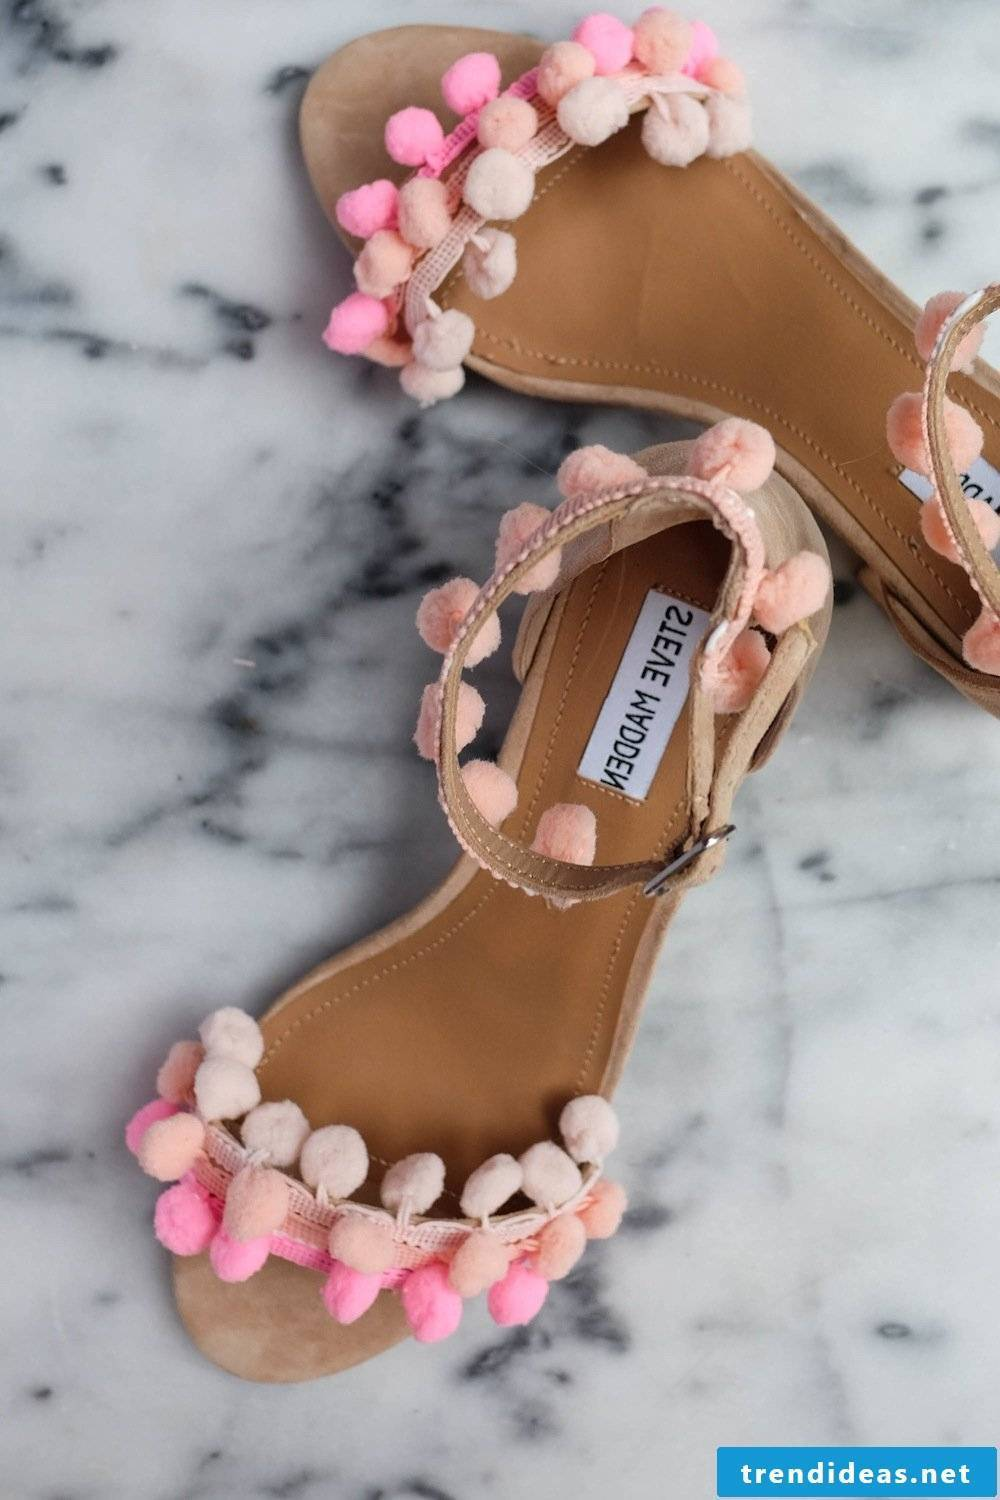 Give the old summery women's shoes a new funny look